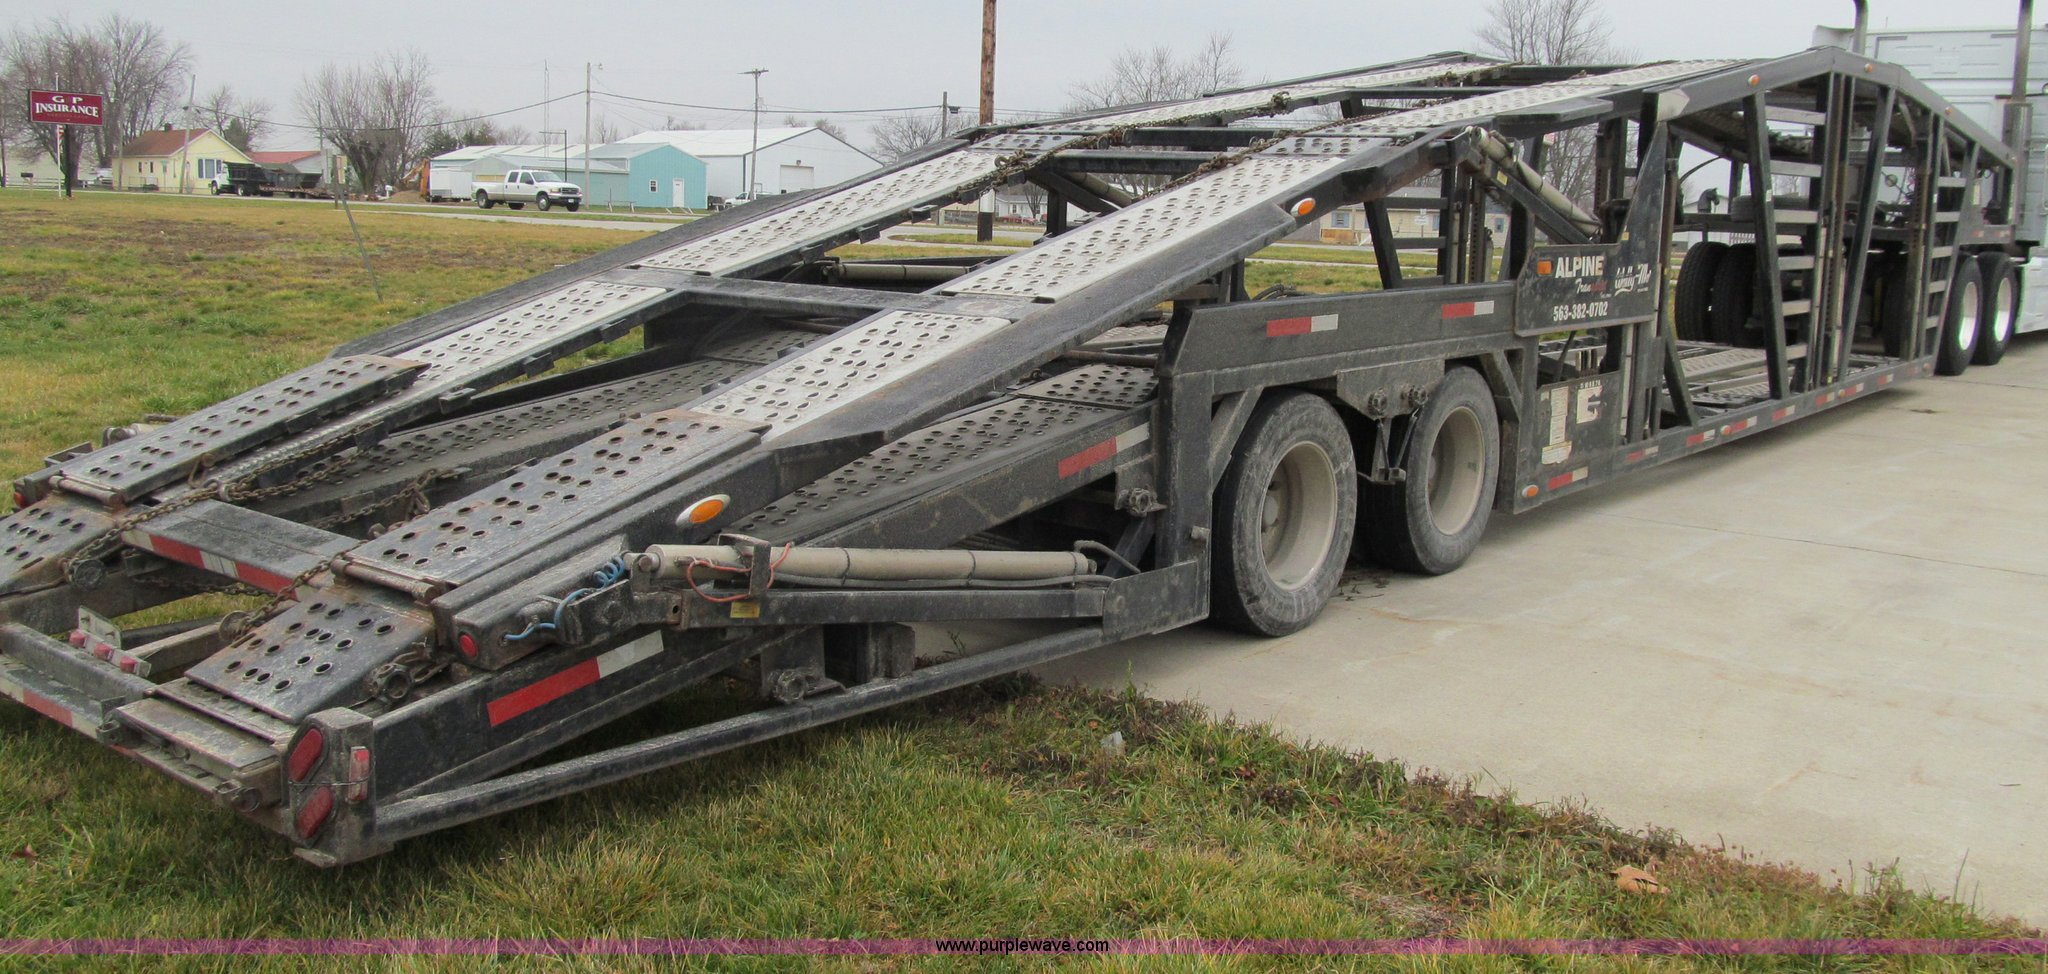 2008 Wally-Mo H-8CC tandem axle car trailer | Item D7023 | S...